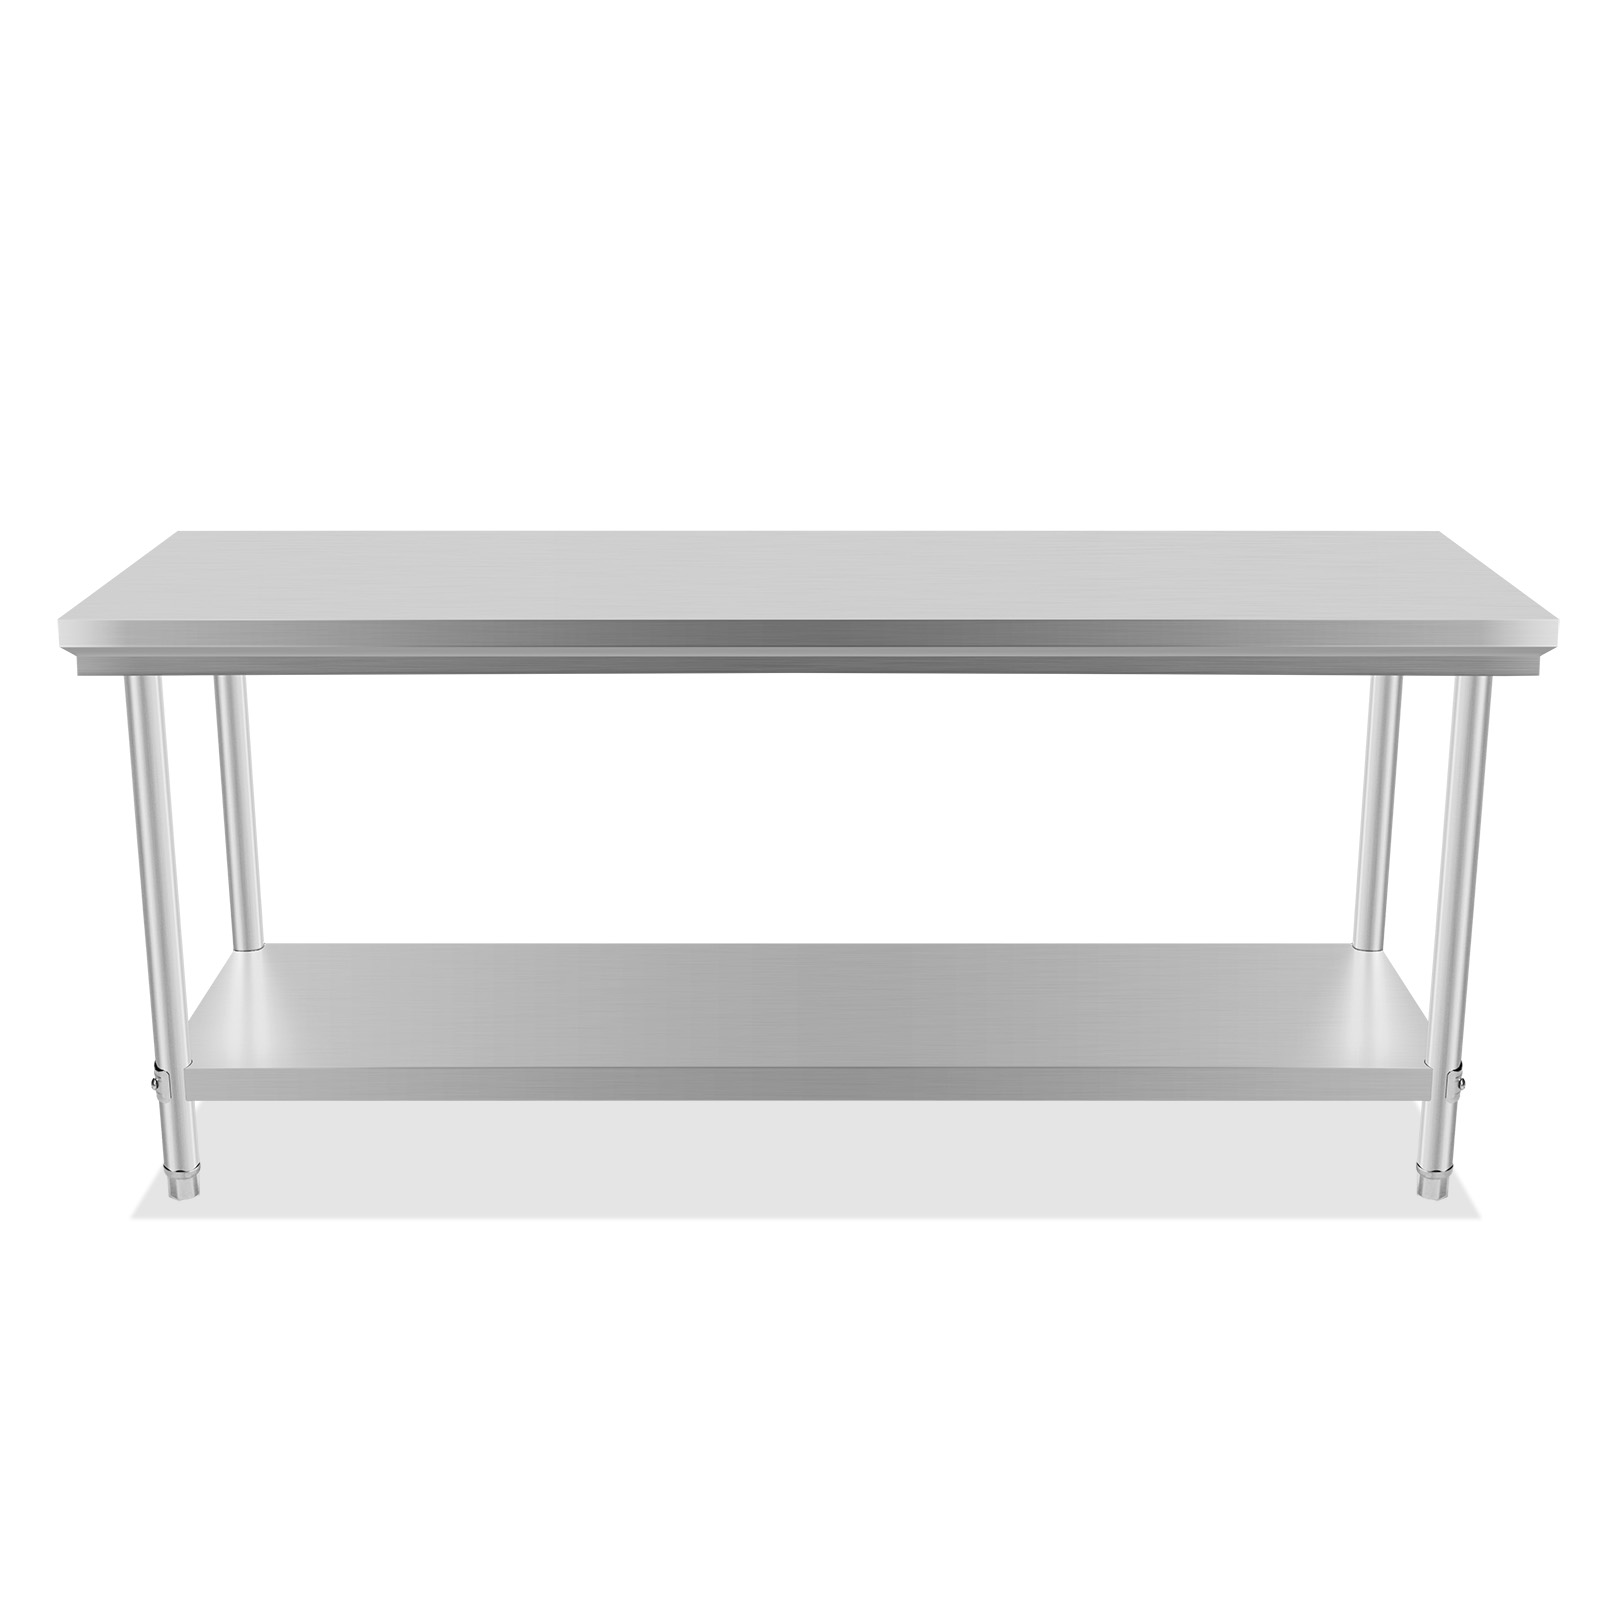 201 commercial stainless steel kitchen work bench top food grade prep table ebay - Industrial kitchen table stainless steel ...